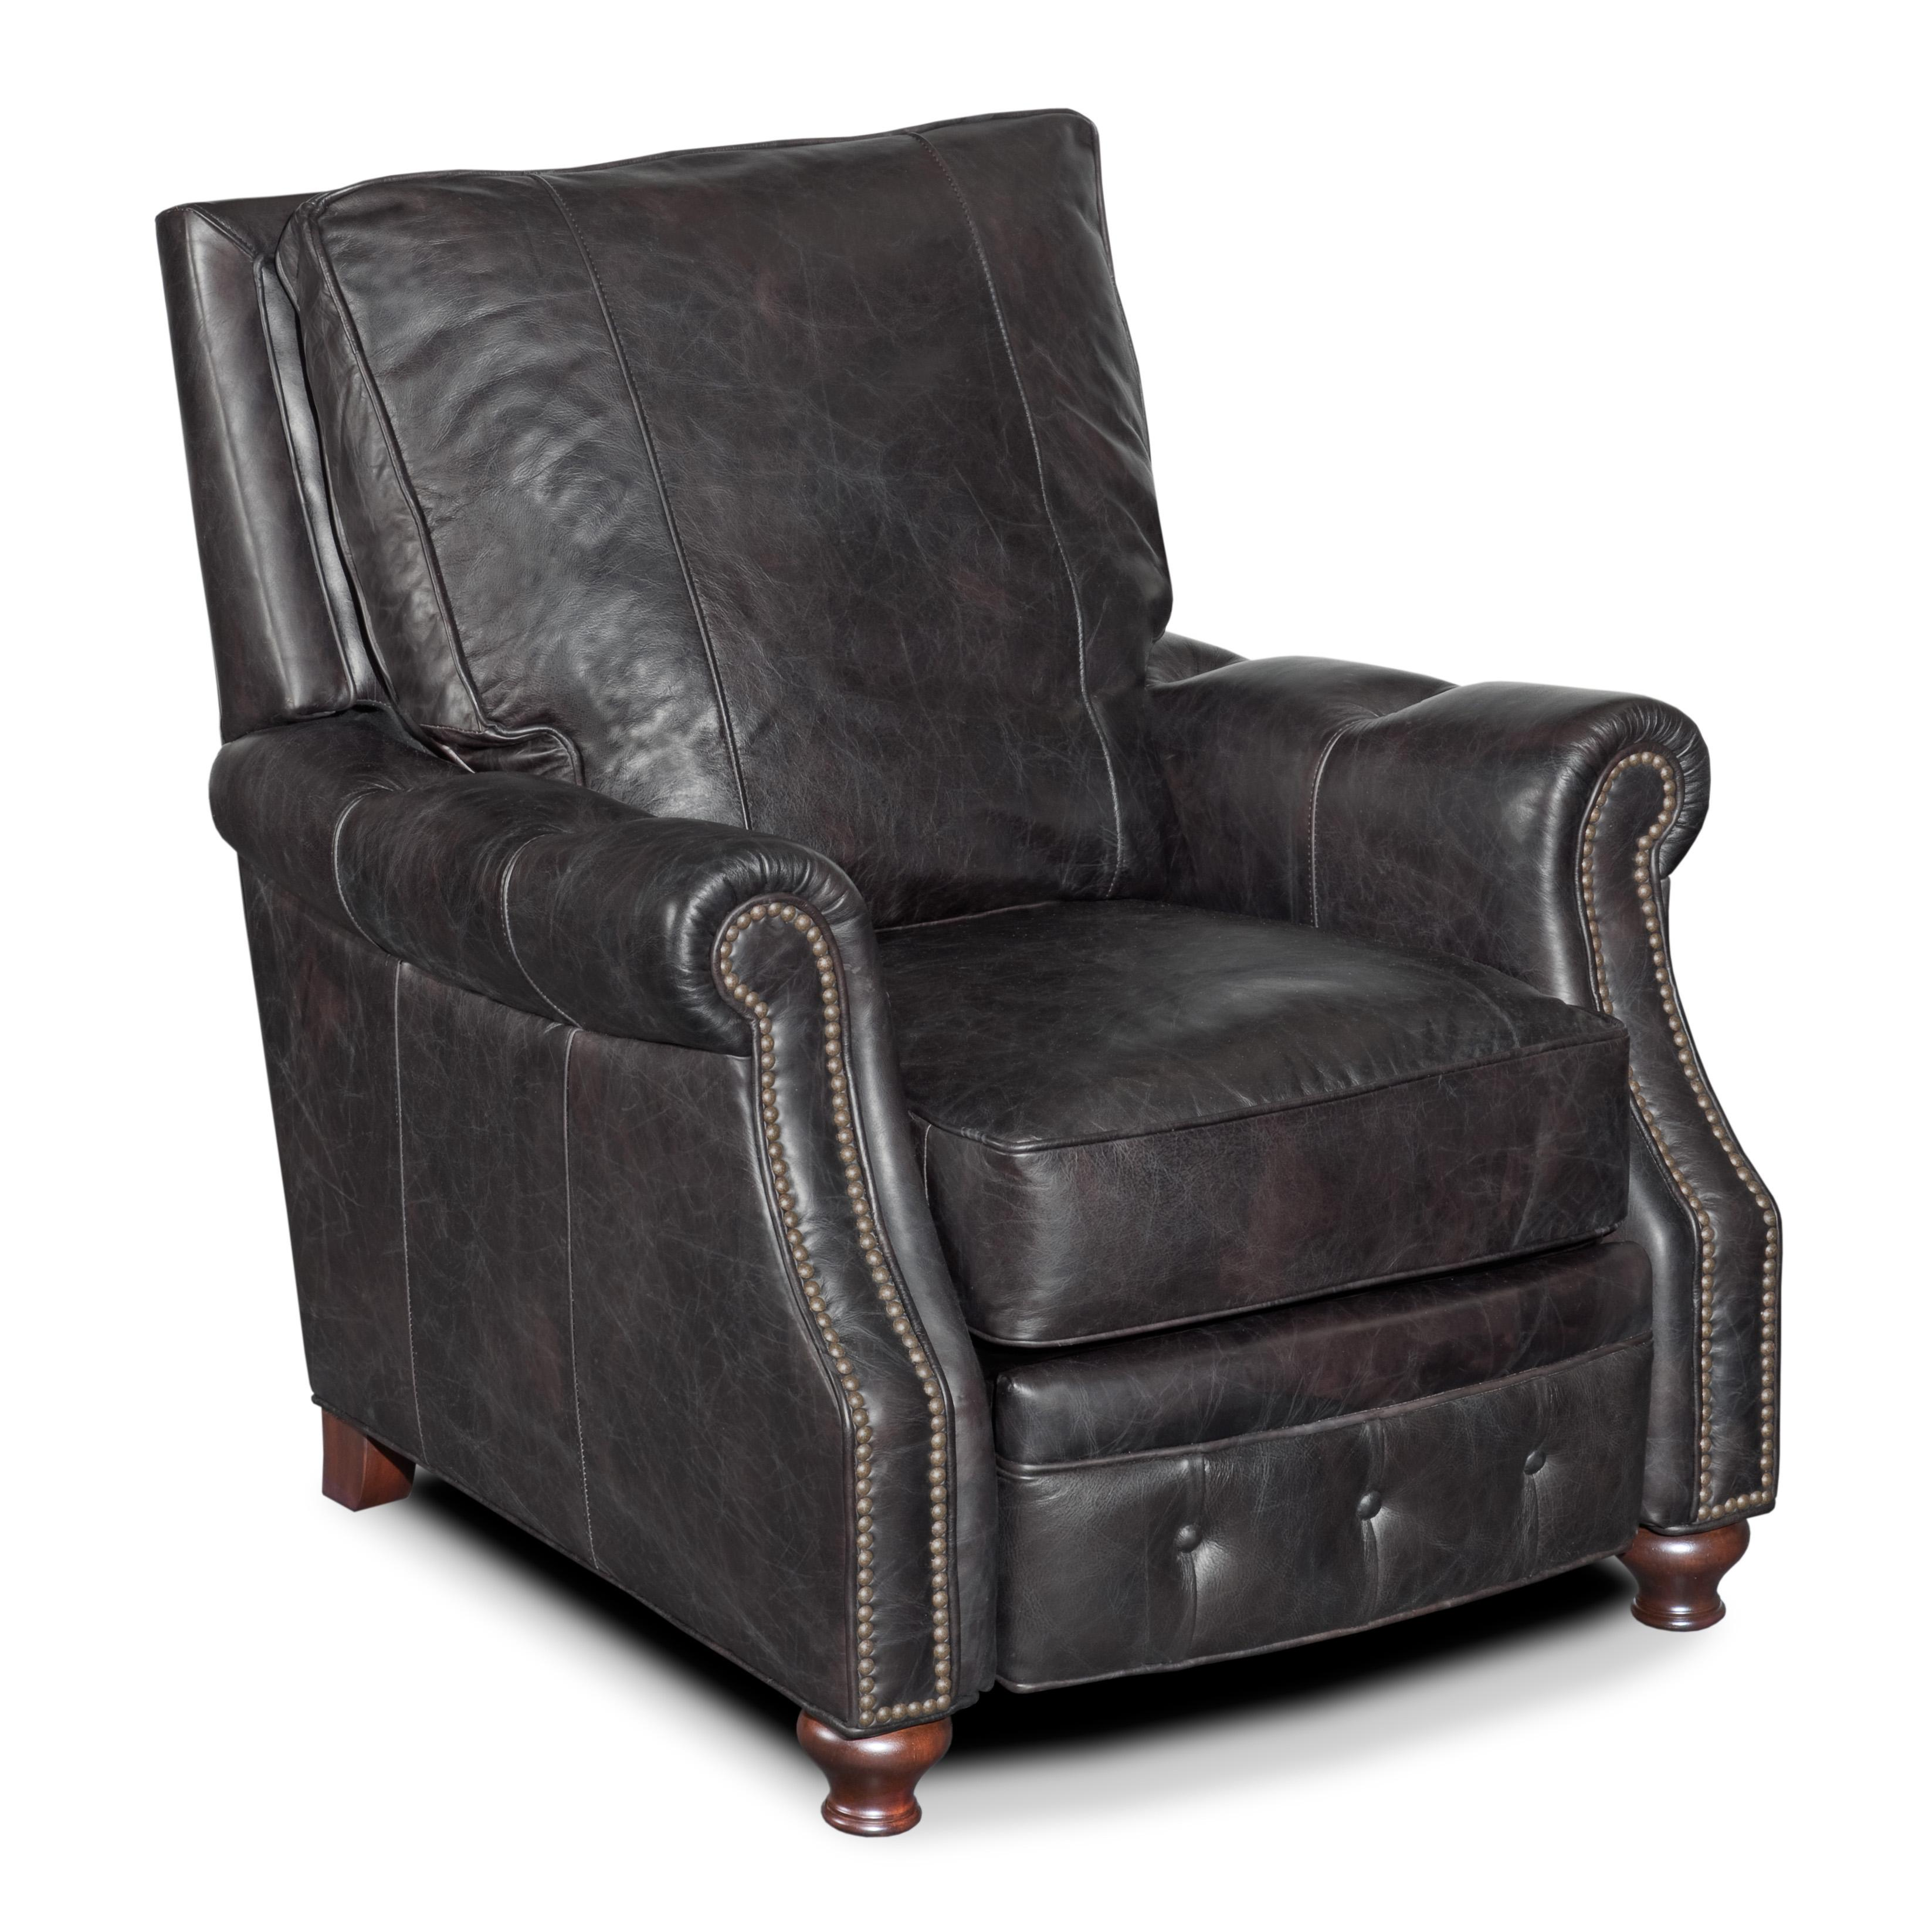 Hooker Furniture Reclining Chairs Traditional High Leg Recliner - Item Number: RC150-099